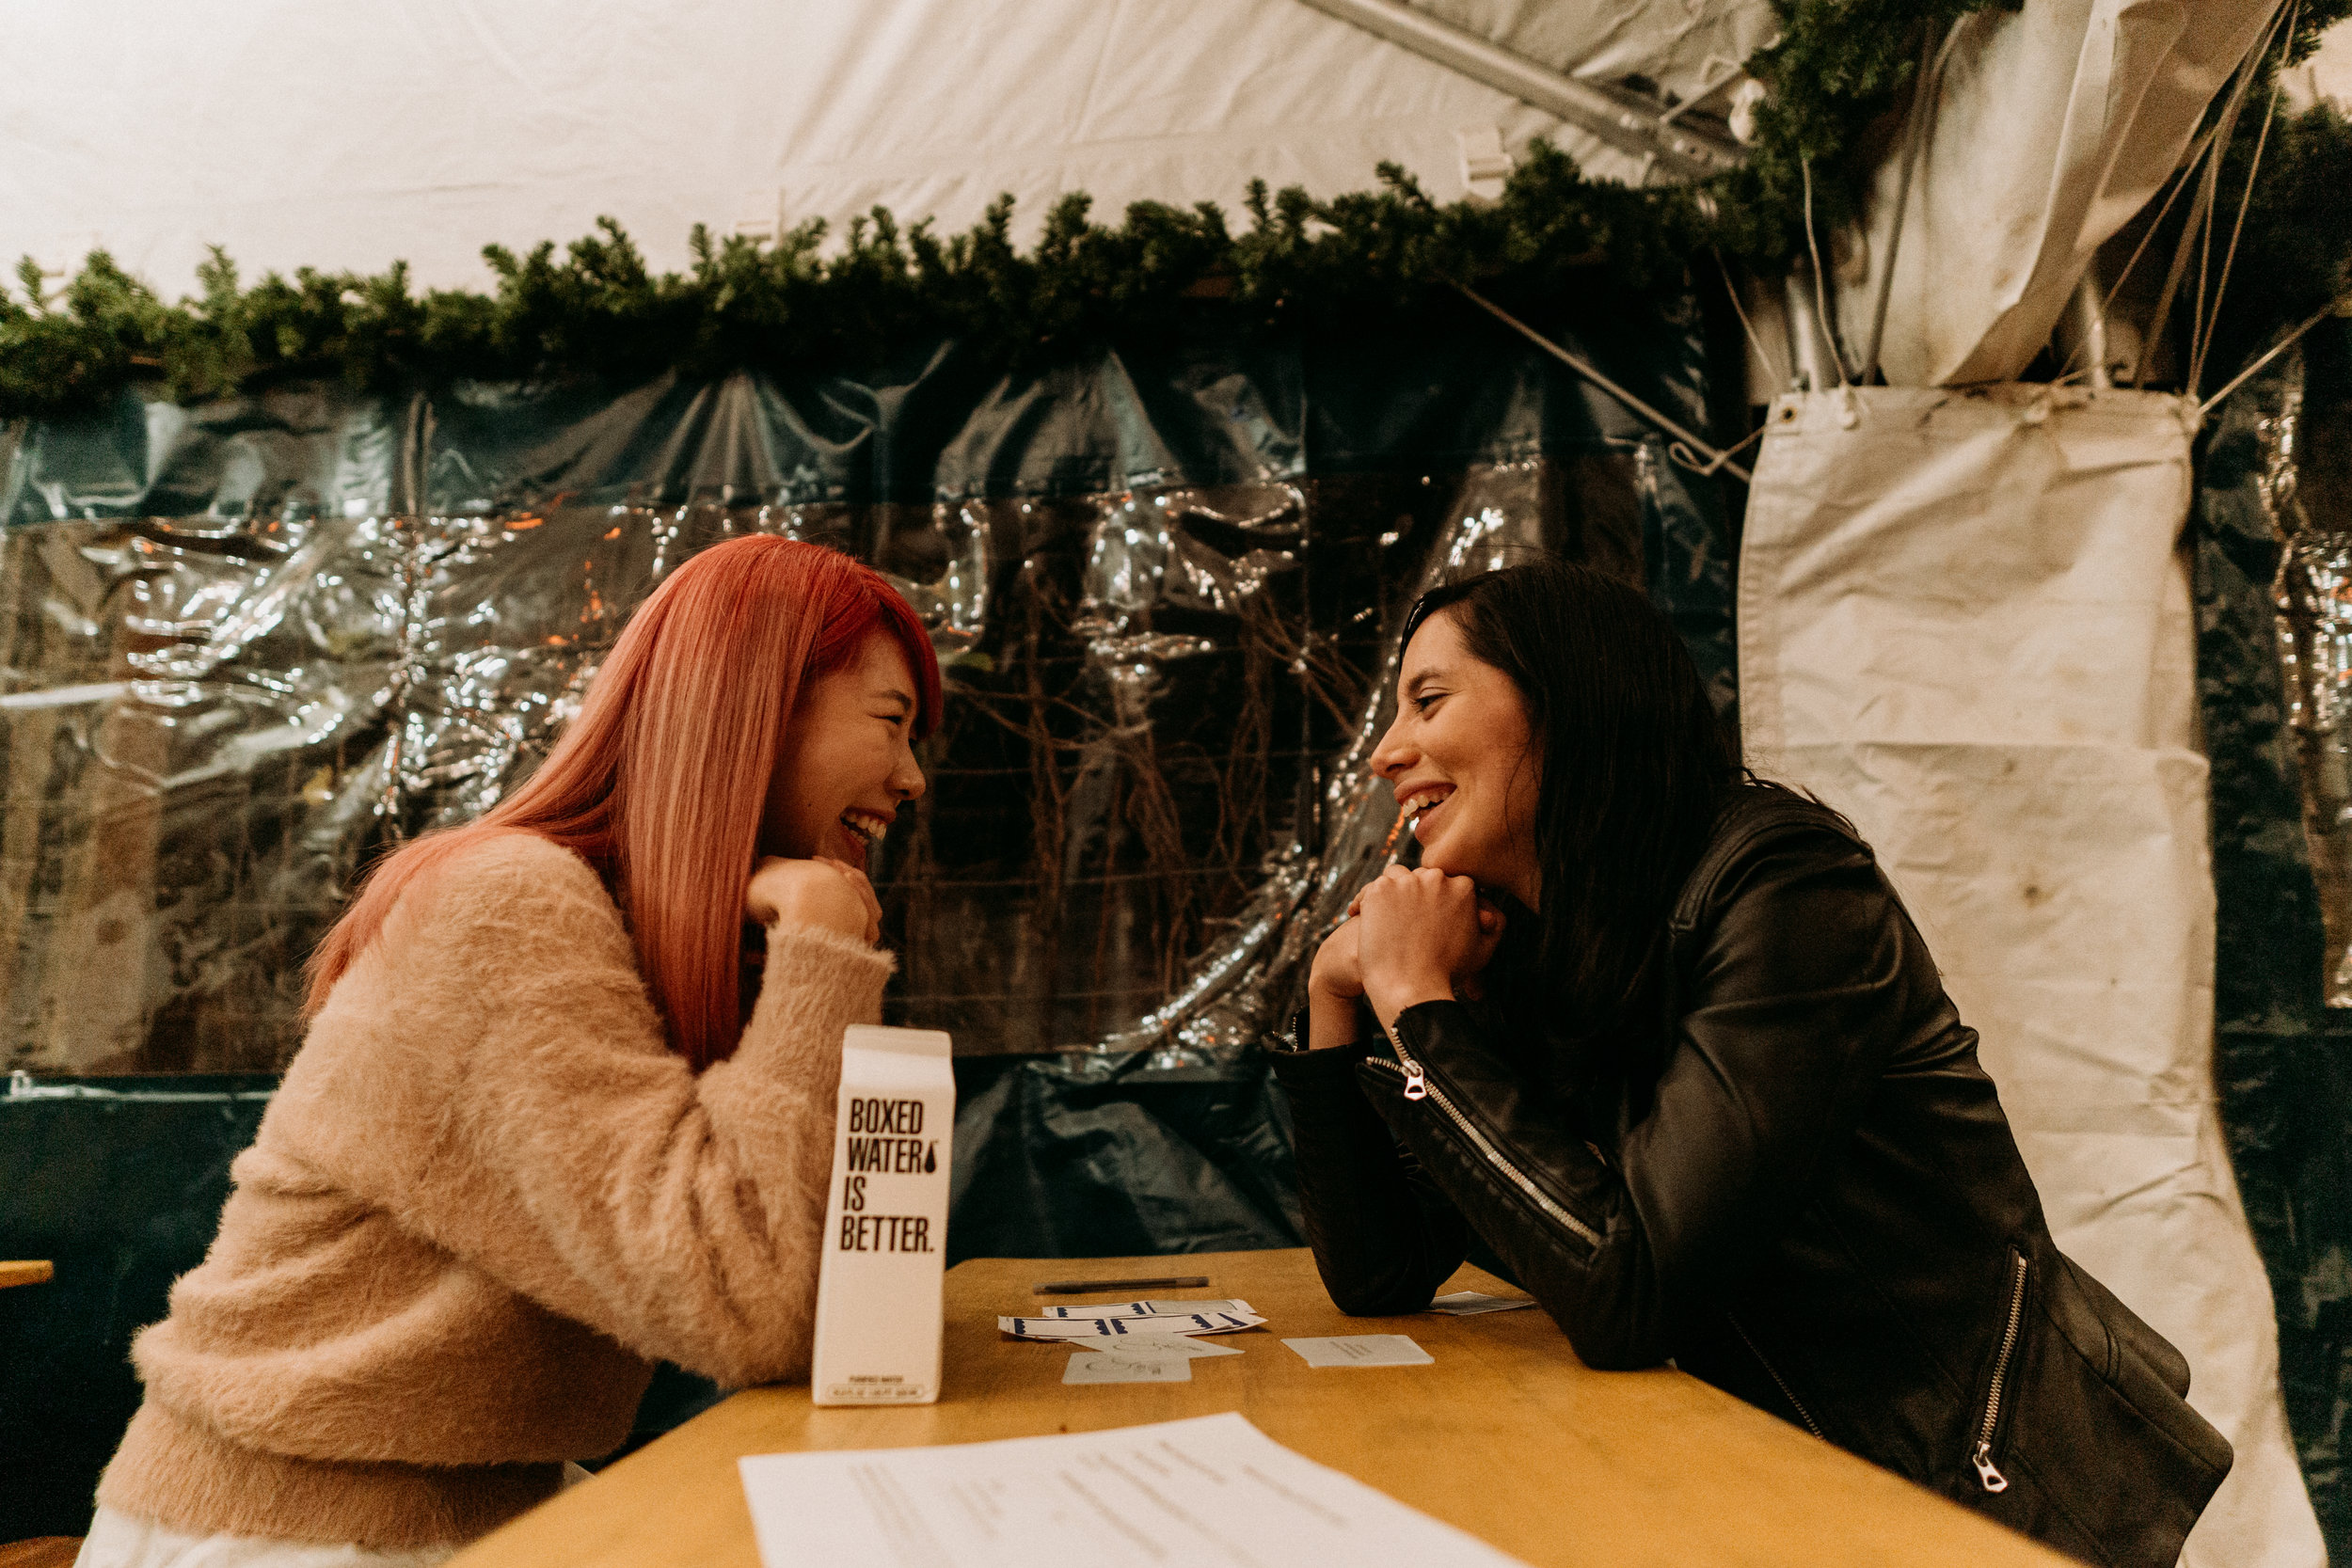 Two participants share a laugh during one of the rounds of Skip The Small Talk. Although most of the questions are serious, there's no lack of a sense of humor sharing things about your life.